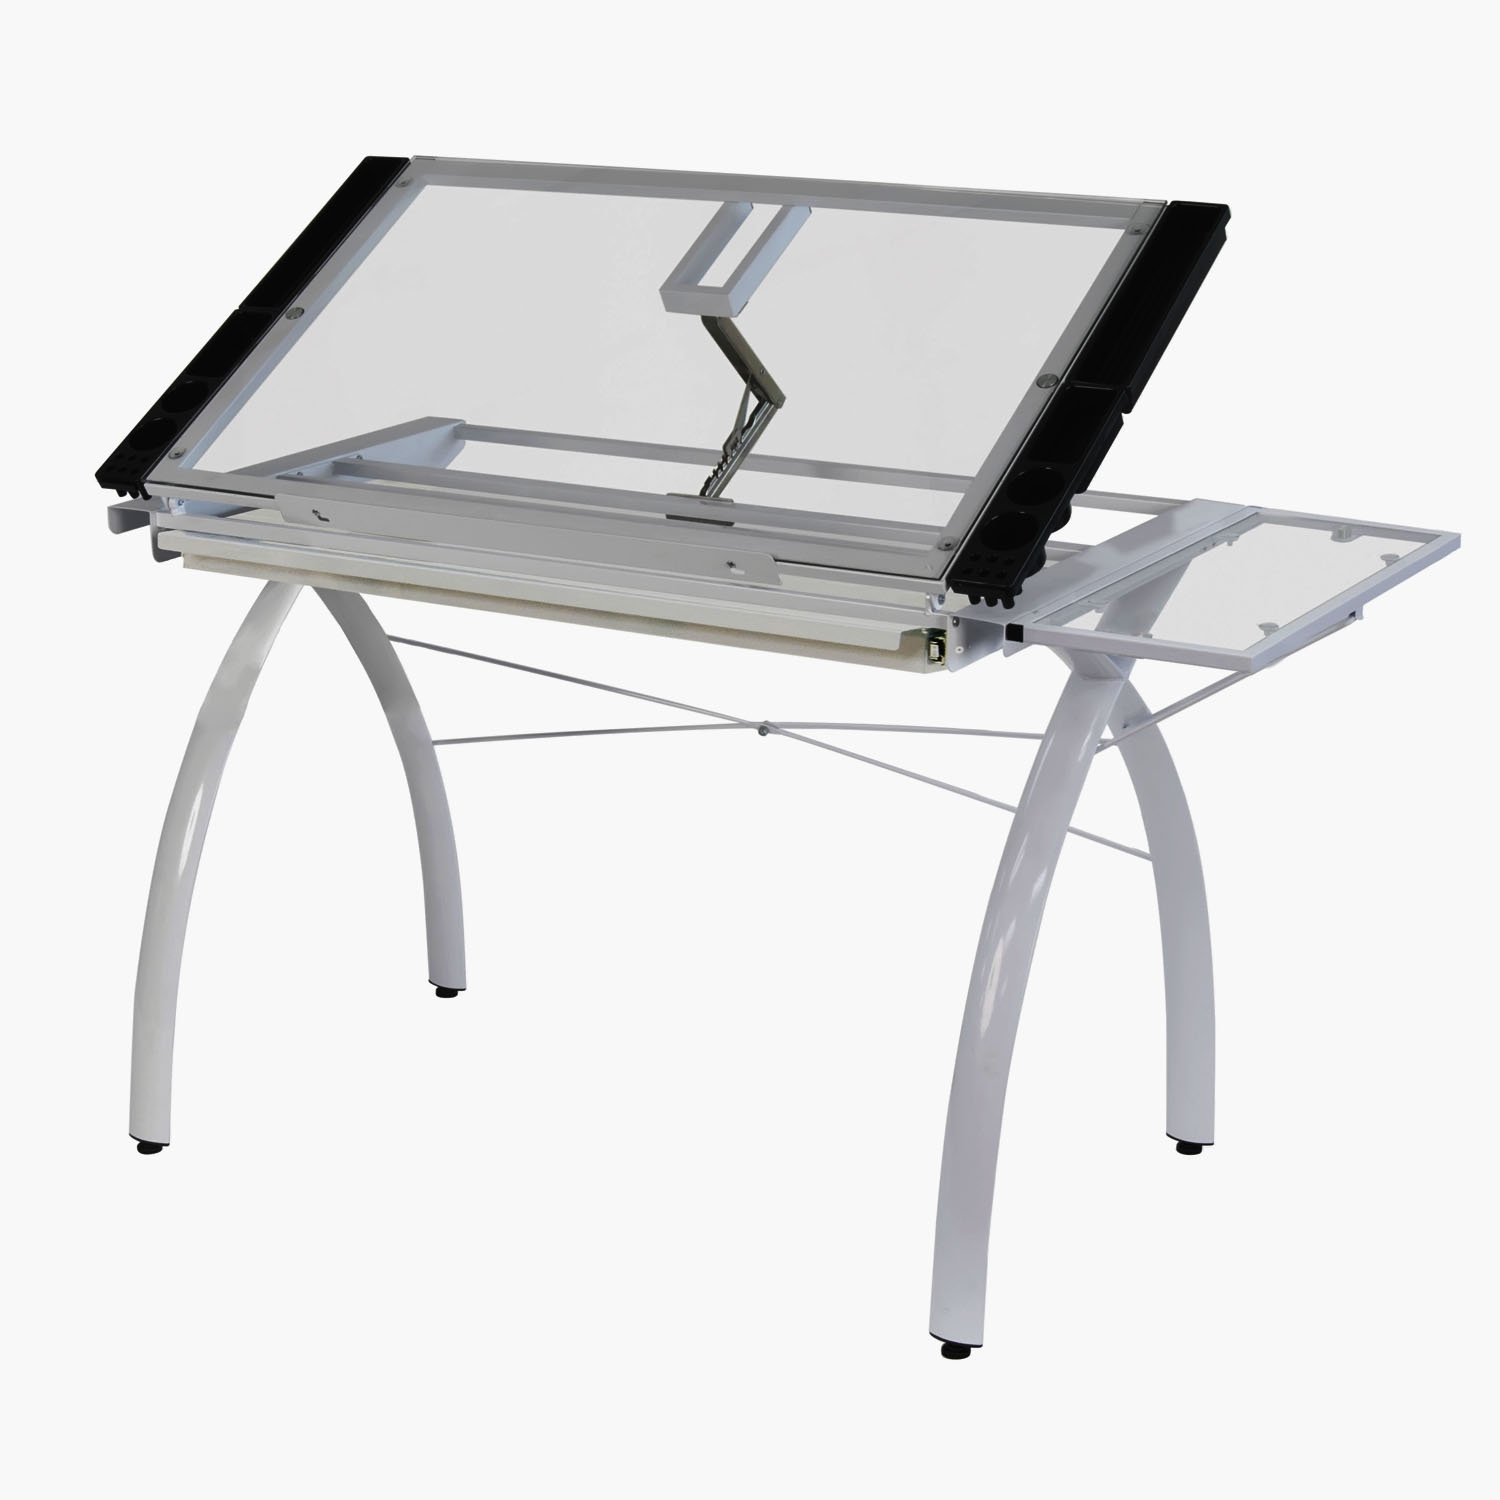 Studio designs futura craft station with glass top - Amazon Com Studio Designs 10096 Futura Craft Station With Folding Shelf White With Clear Glass Arts Crafts Sewing